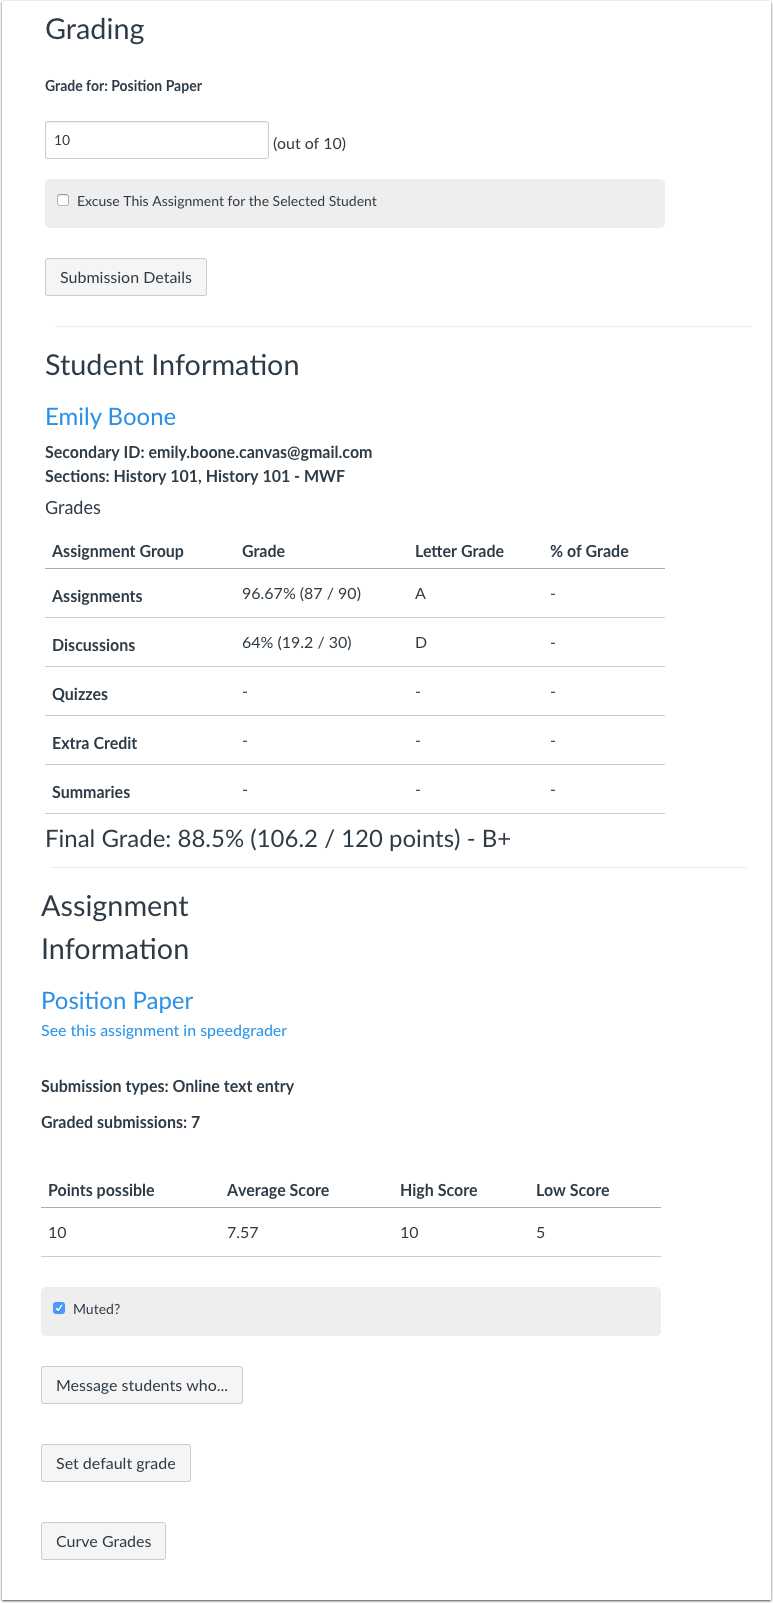 View Gradebook Information